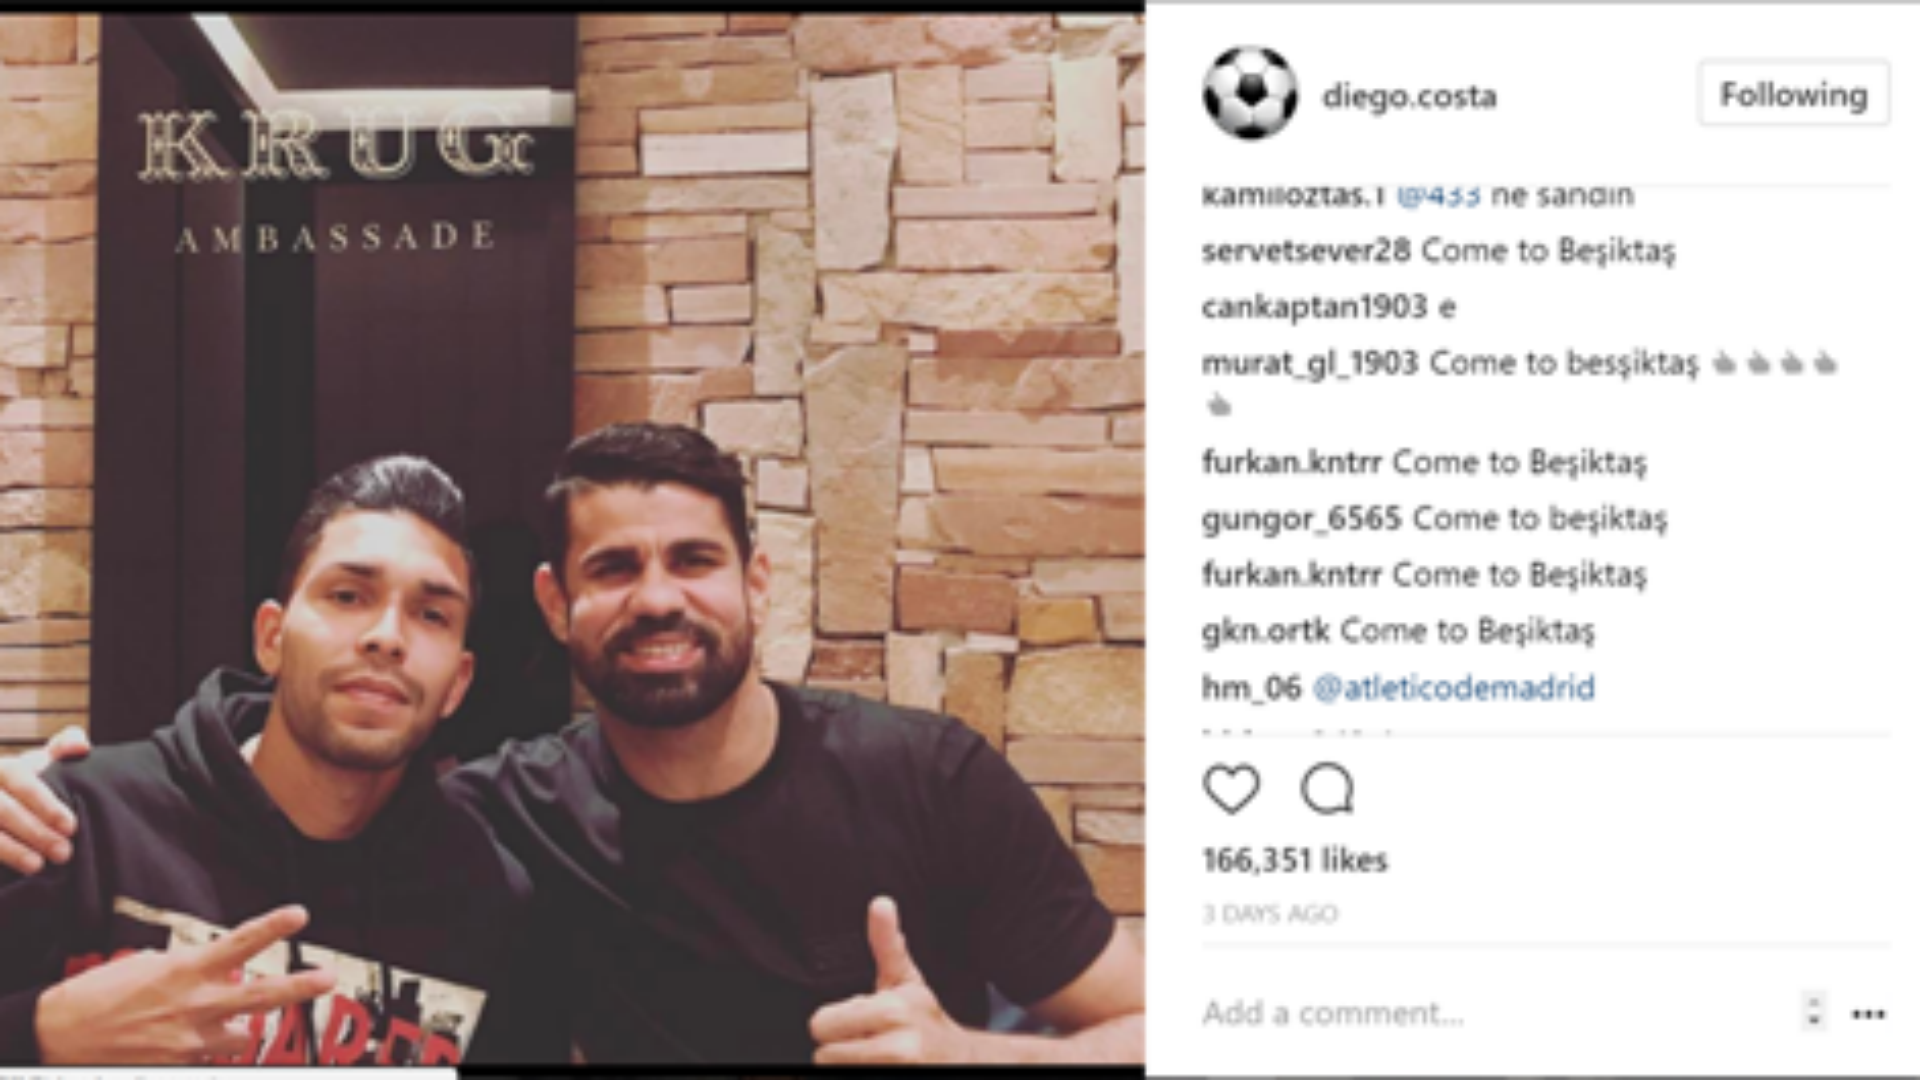 Image result for diego costa come to besiktas